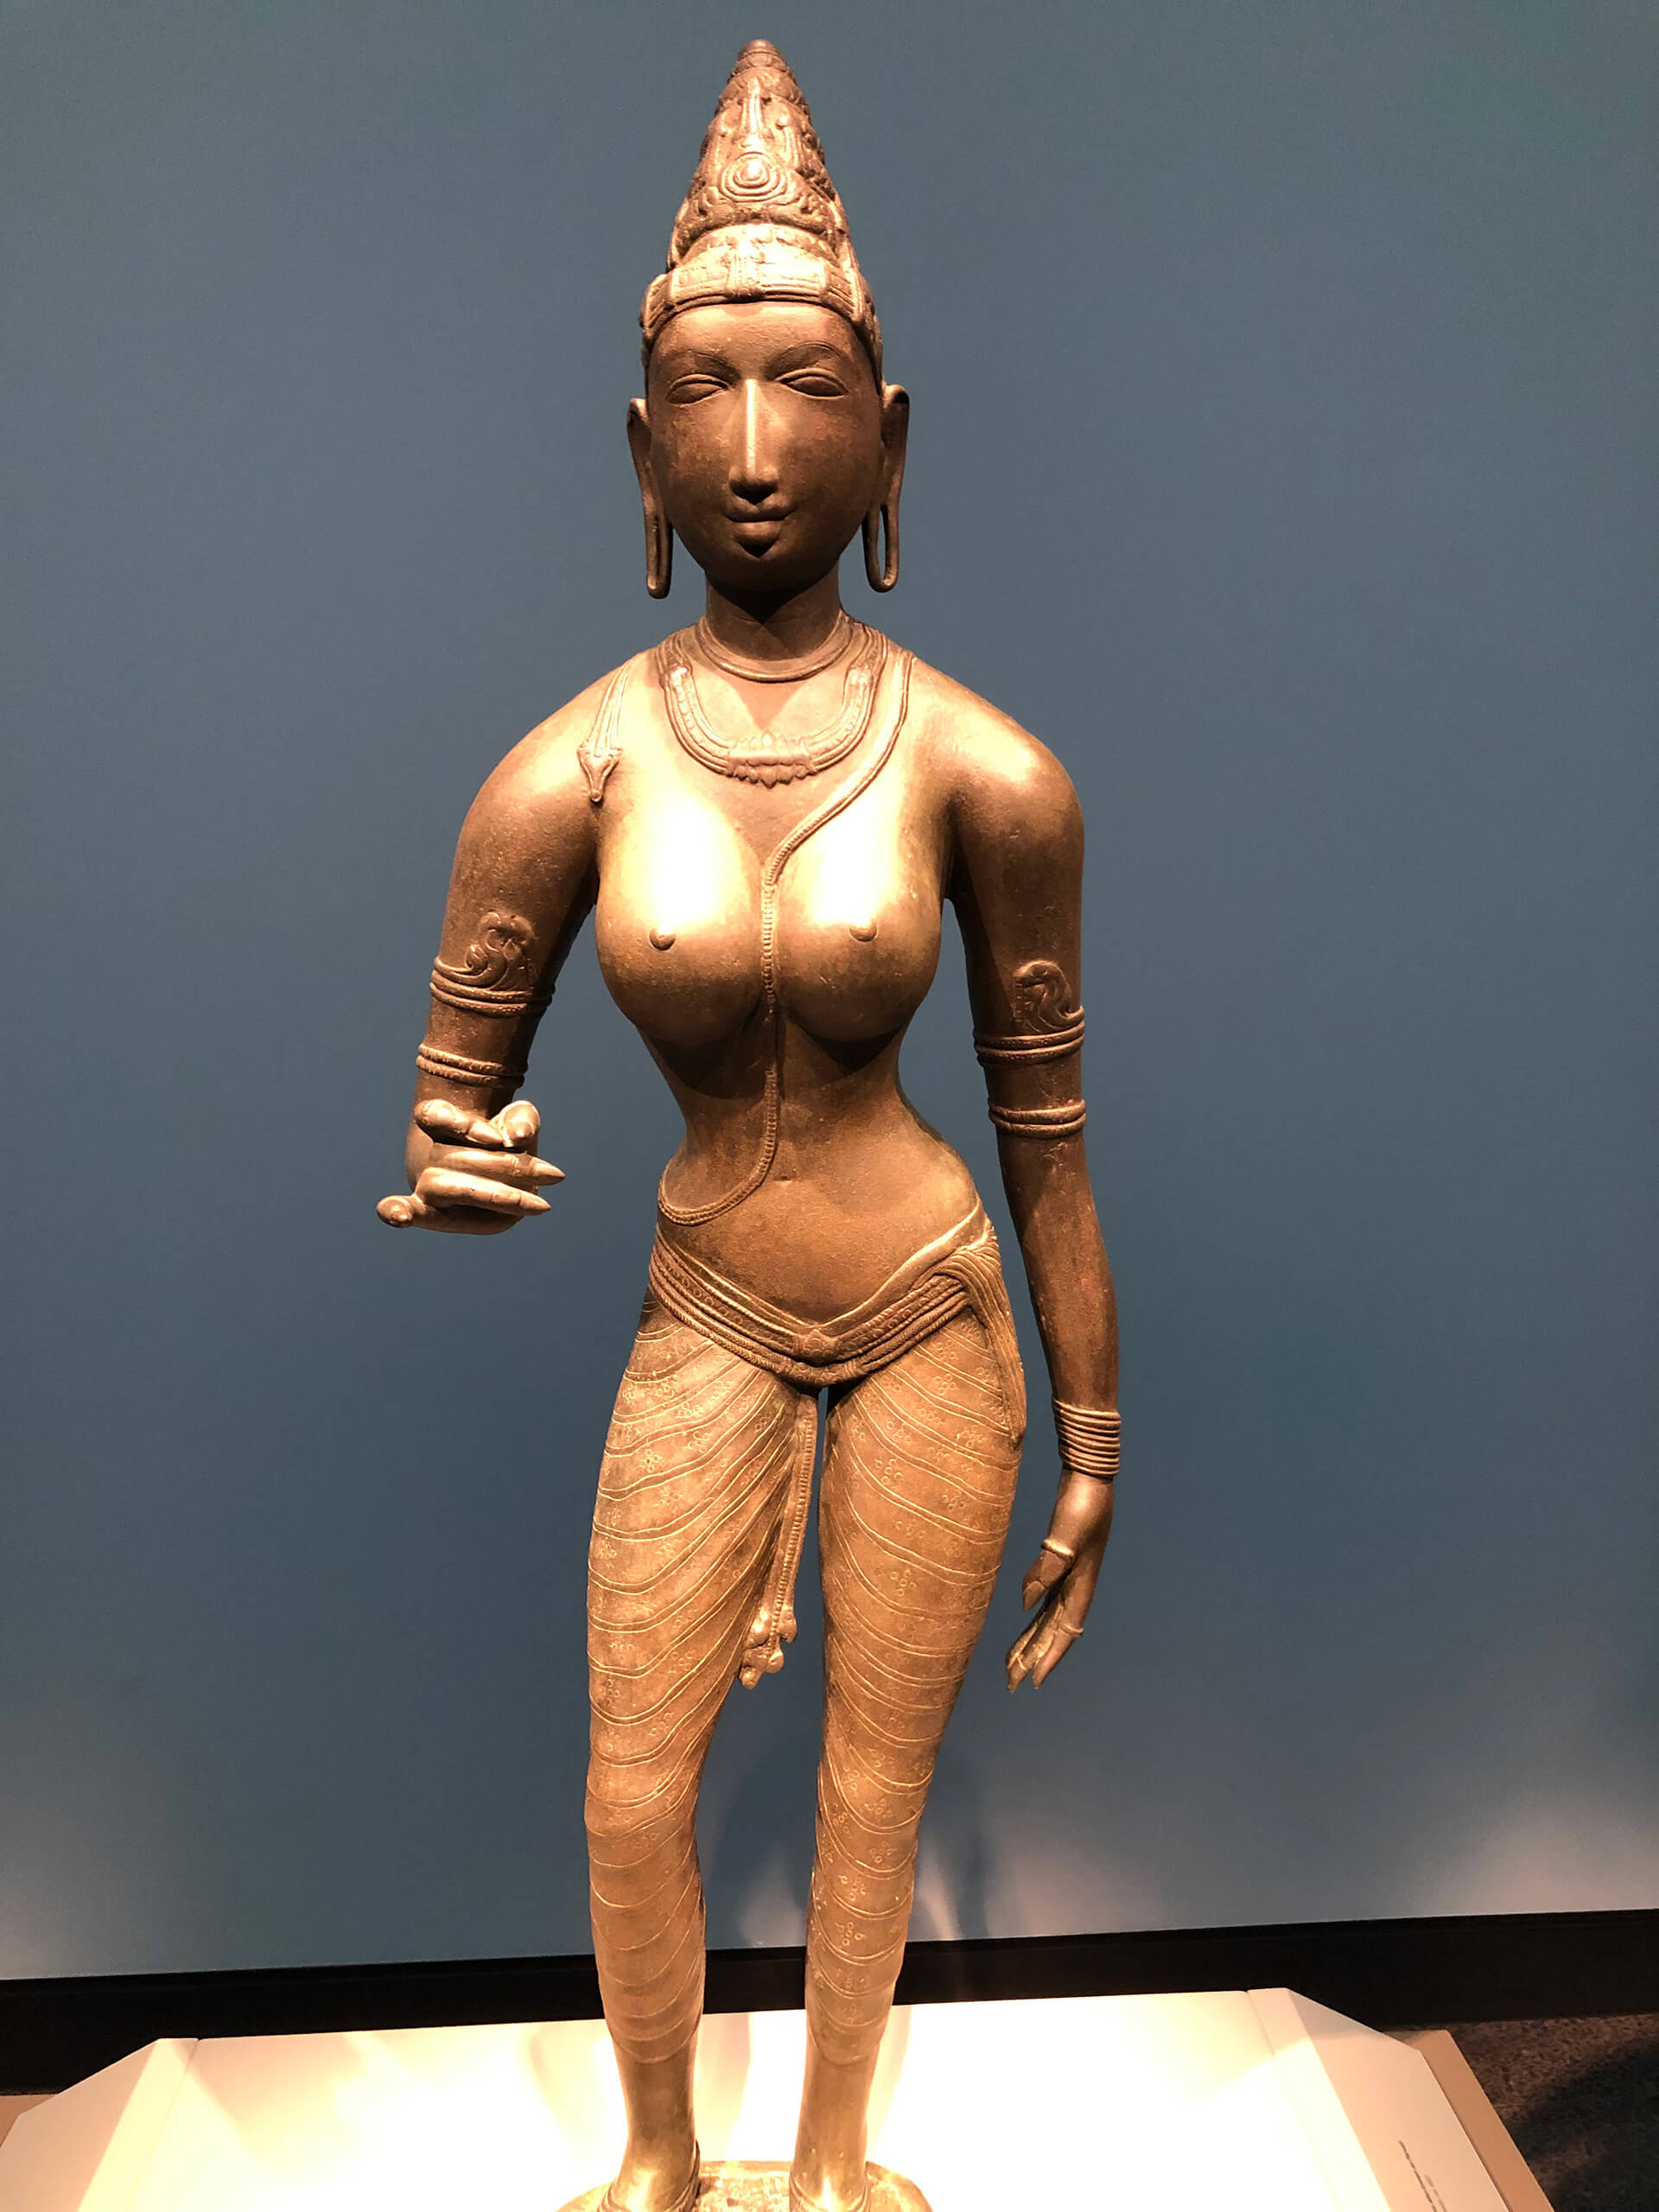 Queen Sembiyan Mahadevi as the Goddess Parvati, National Museum of Asian Art, Smithsonian Museum, Washington, D.C. | International Museum Day 2020 (May 18) theme 'Museums for Equality: Diversity and Inclusion' | International Council of Museums | STIRworld